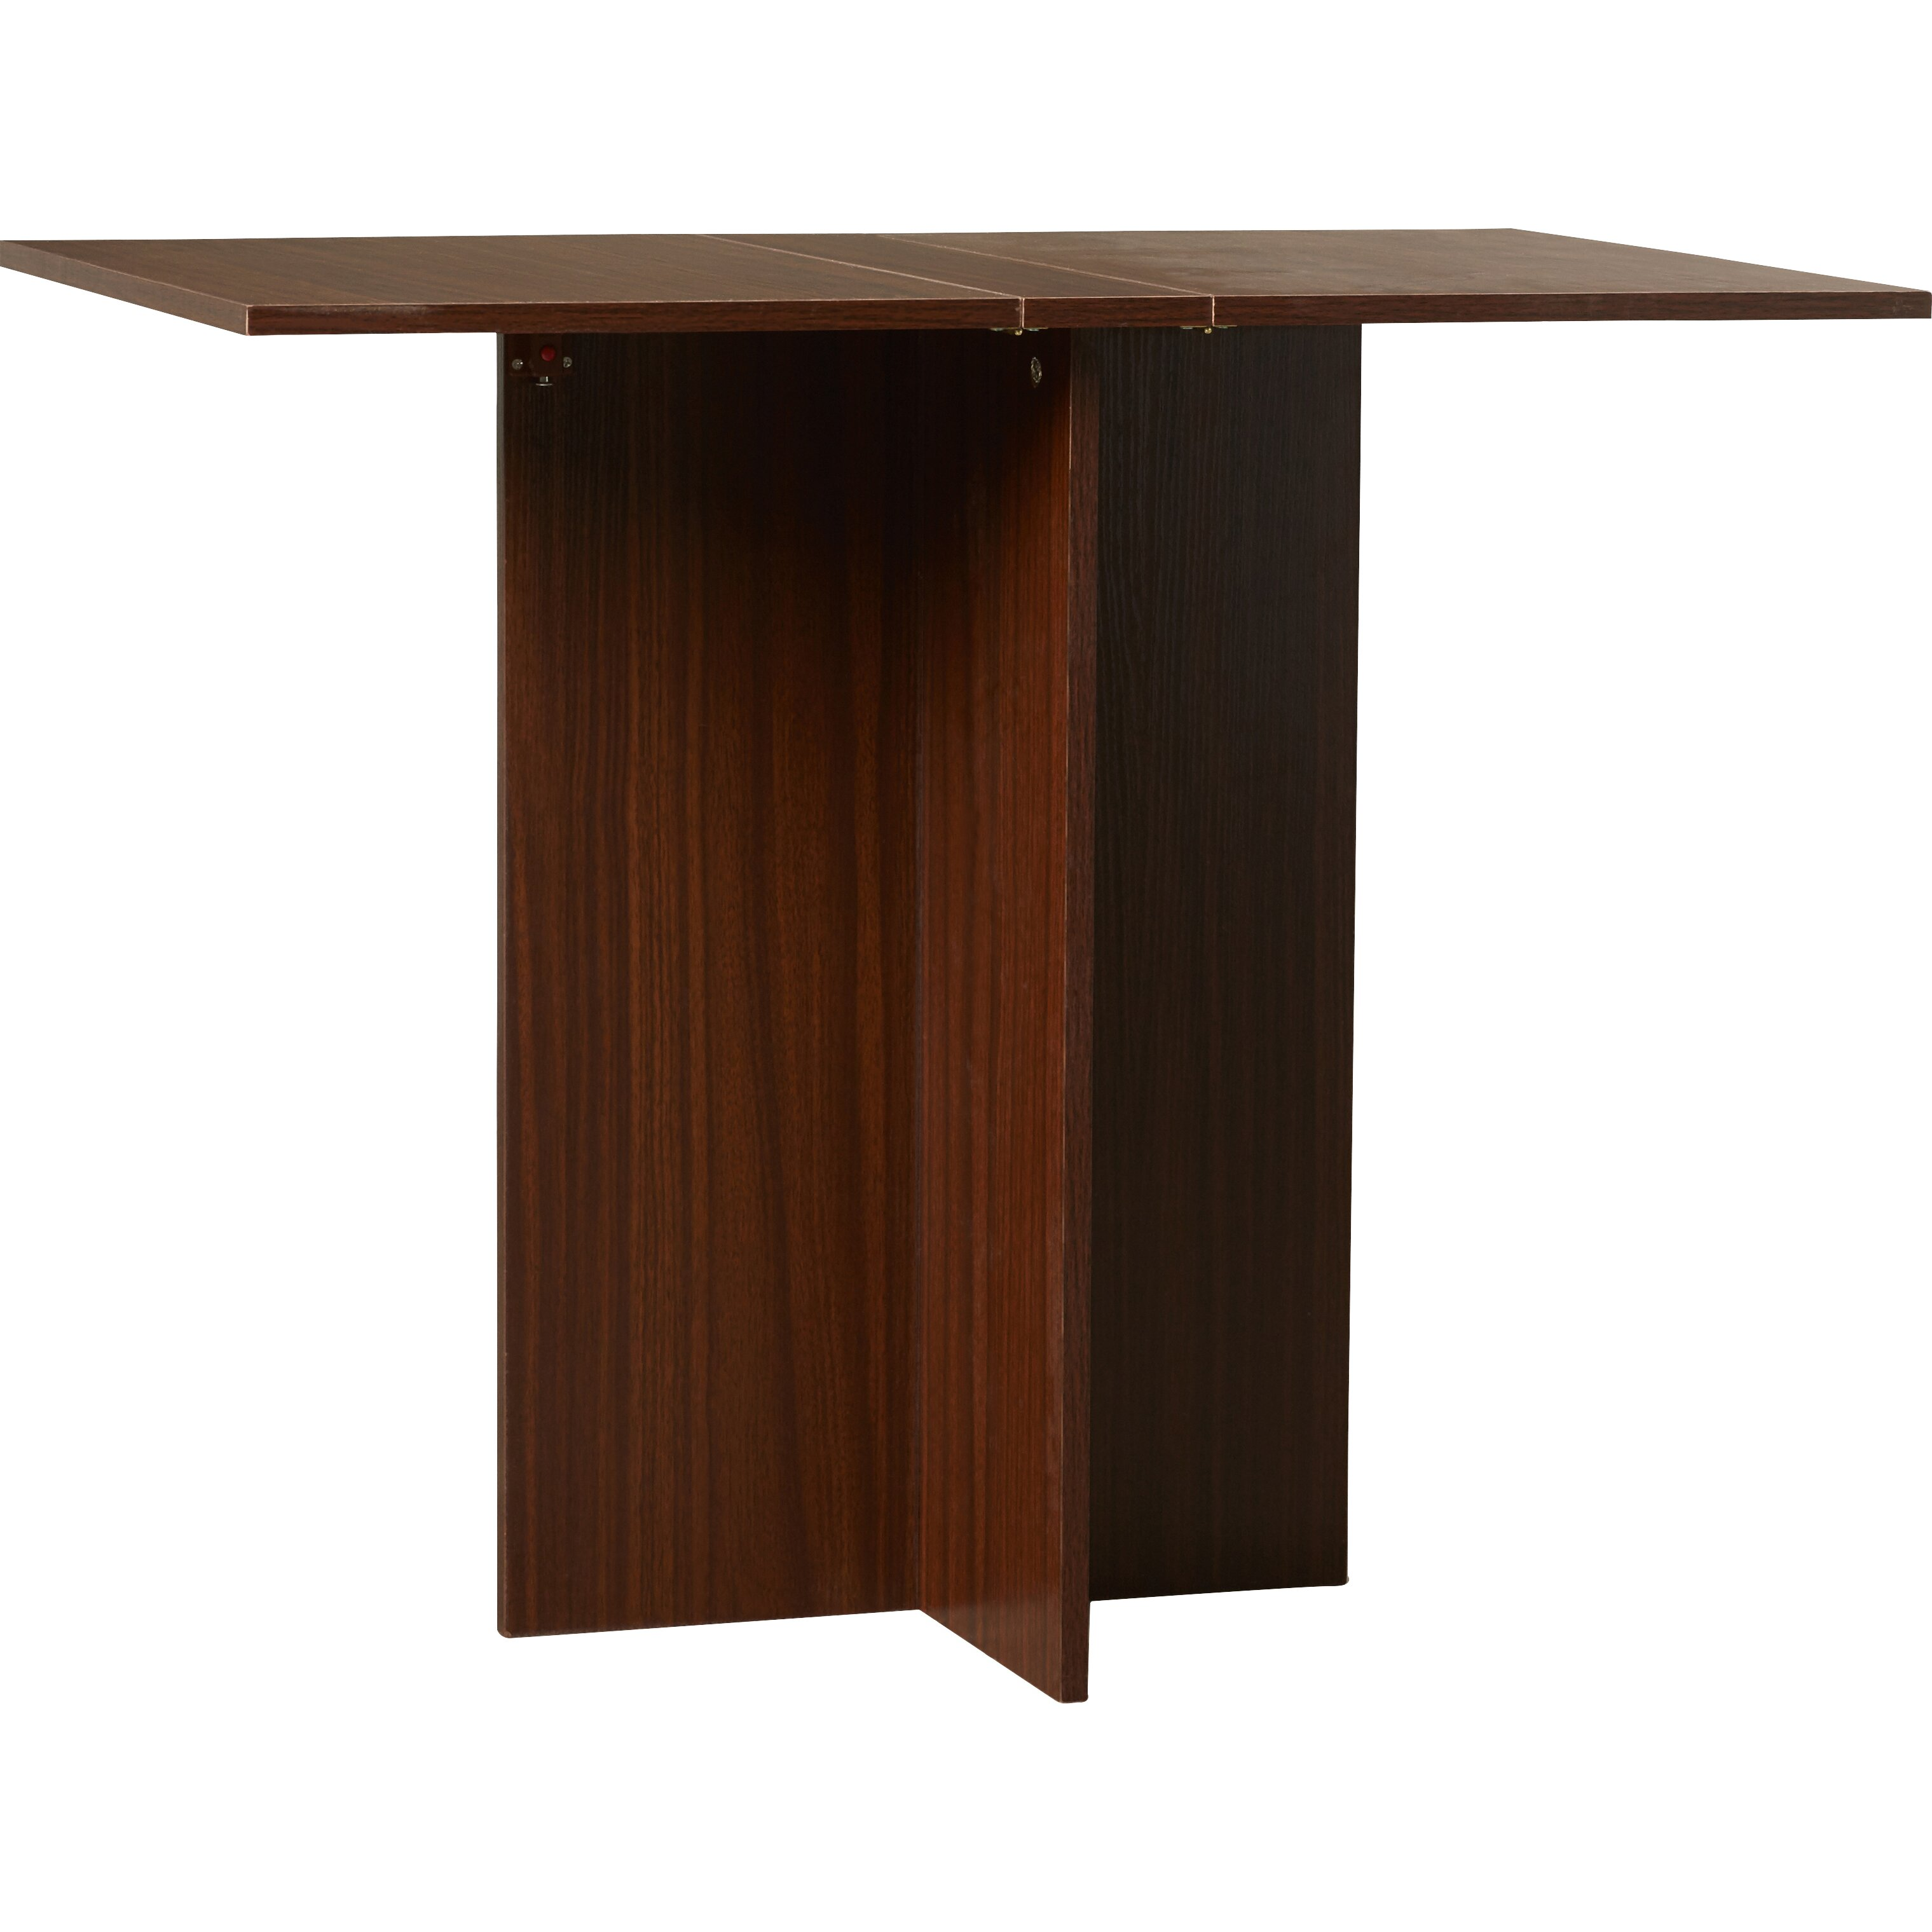 Zipcode Design Natalie Extendable Dining Table amp Reviews  : Zipcode2525E22525842525A2 Design Natalie Extendable Dining Table ZIPC2366 from www.wayfairsupply.com size 3039 x 3039 jpeg 600kB